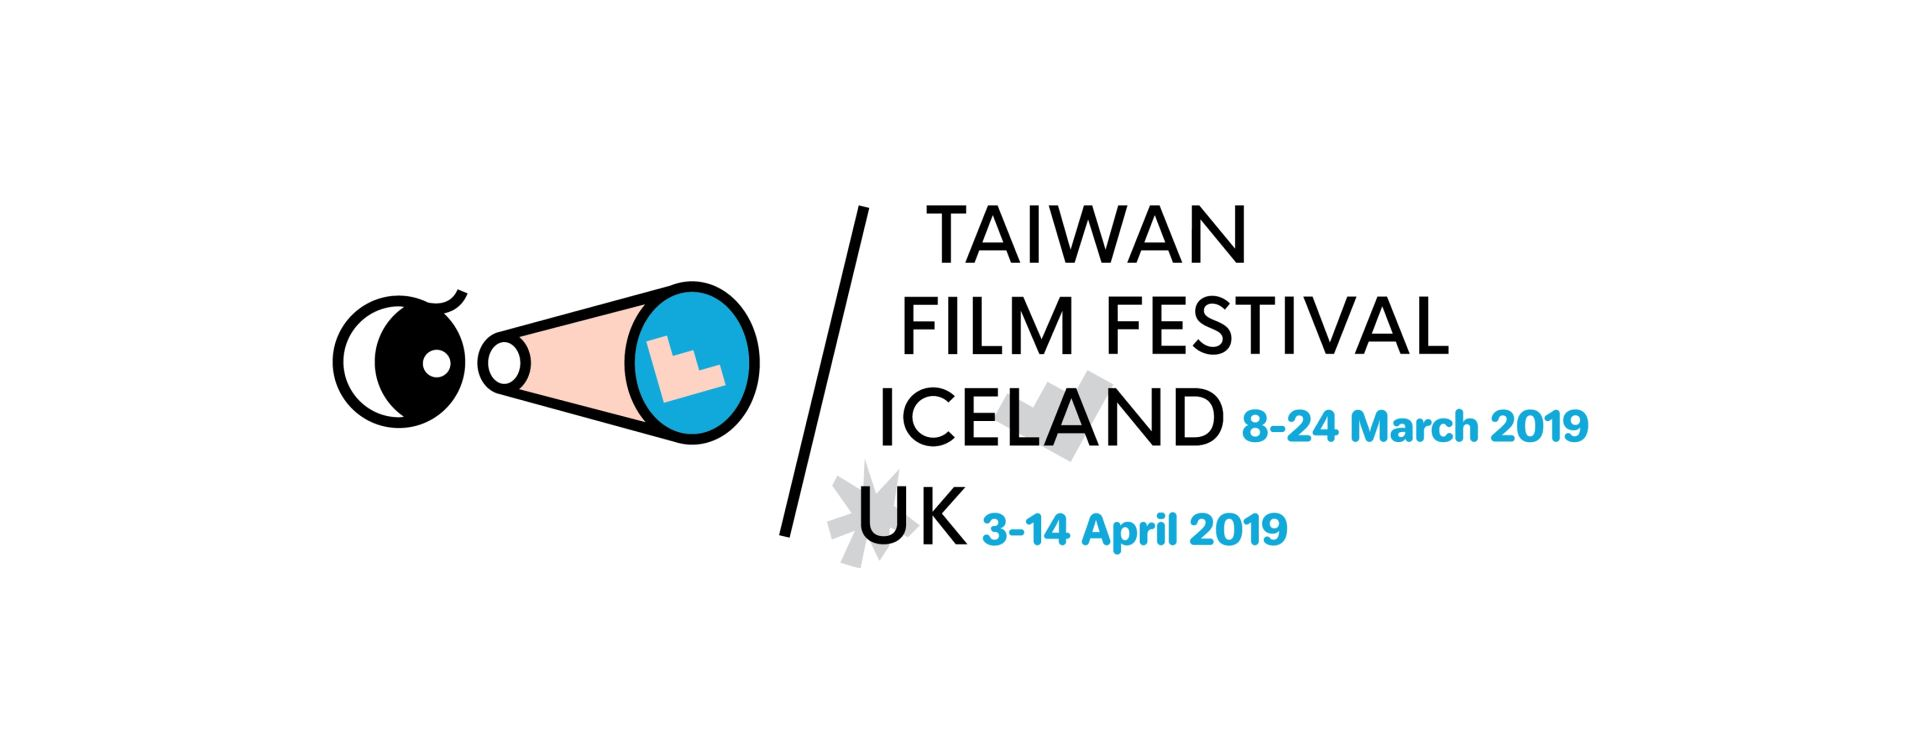 Inaugural Taiwan Film Festival Iceland set for March 2019[另開新視窗]